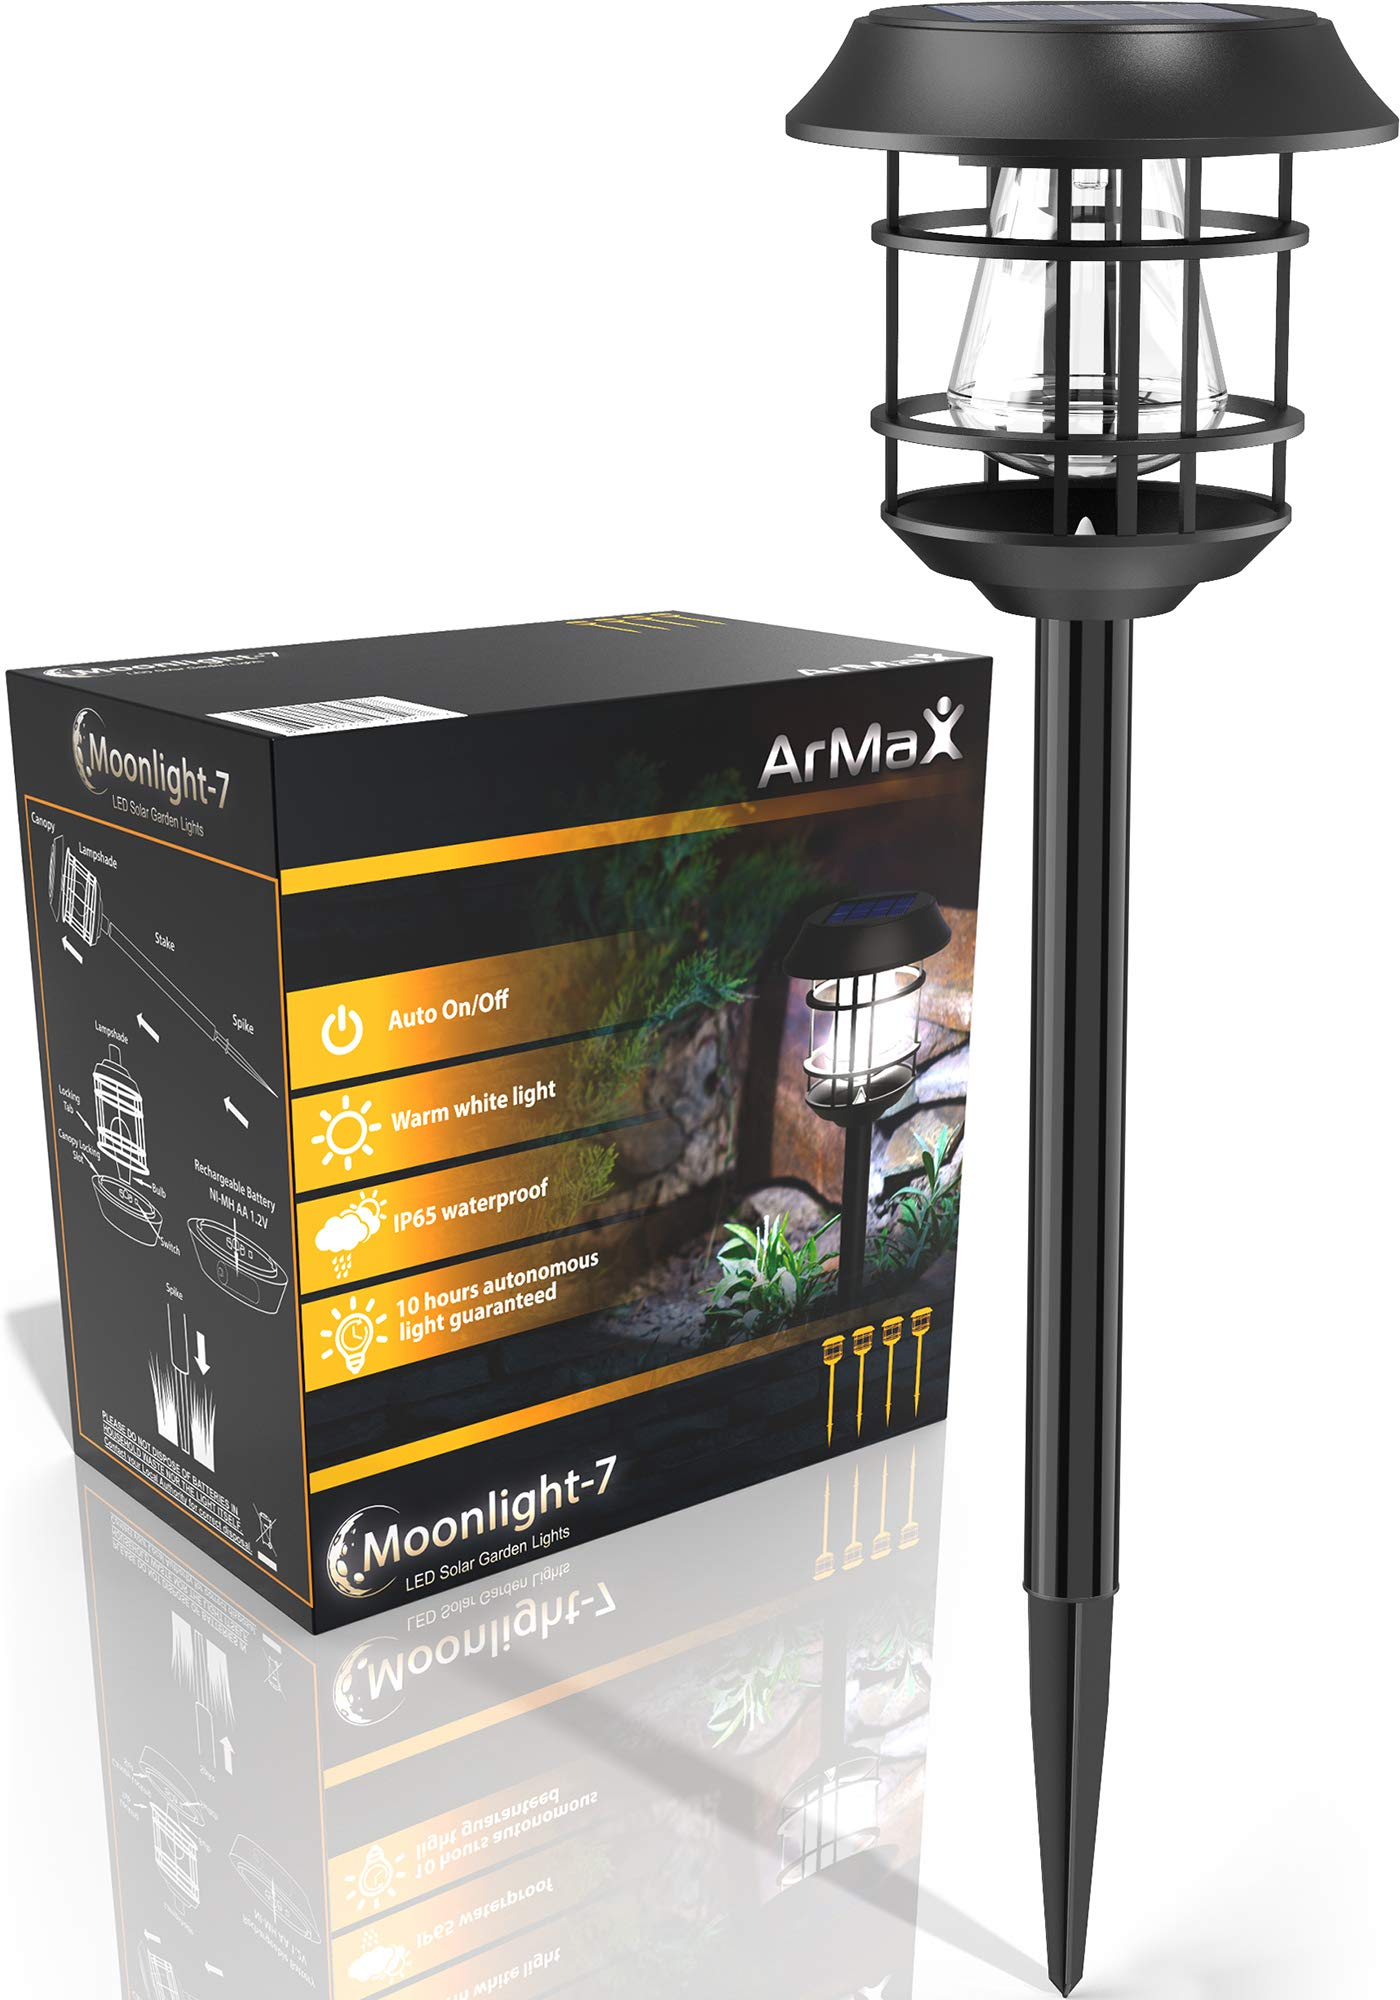 ArMax Solar Walkway In-Ground Stake Lights Outdoor - For Garden Pathway Driveway Sidewalk Yard Lawn Path - Outside Landscape Lighting - Bright Warm White LED Light Up To 25HR - 4 Pack Set - Waterproof